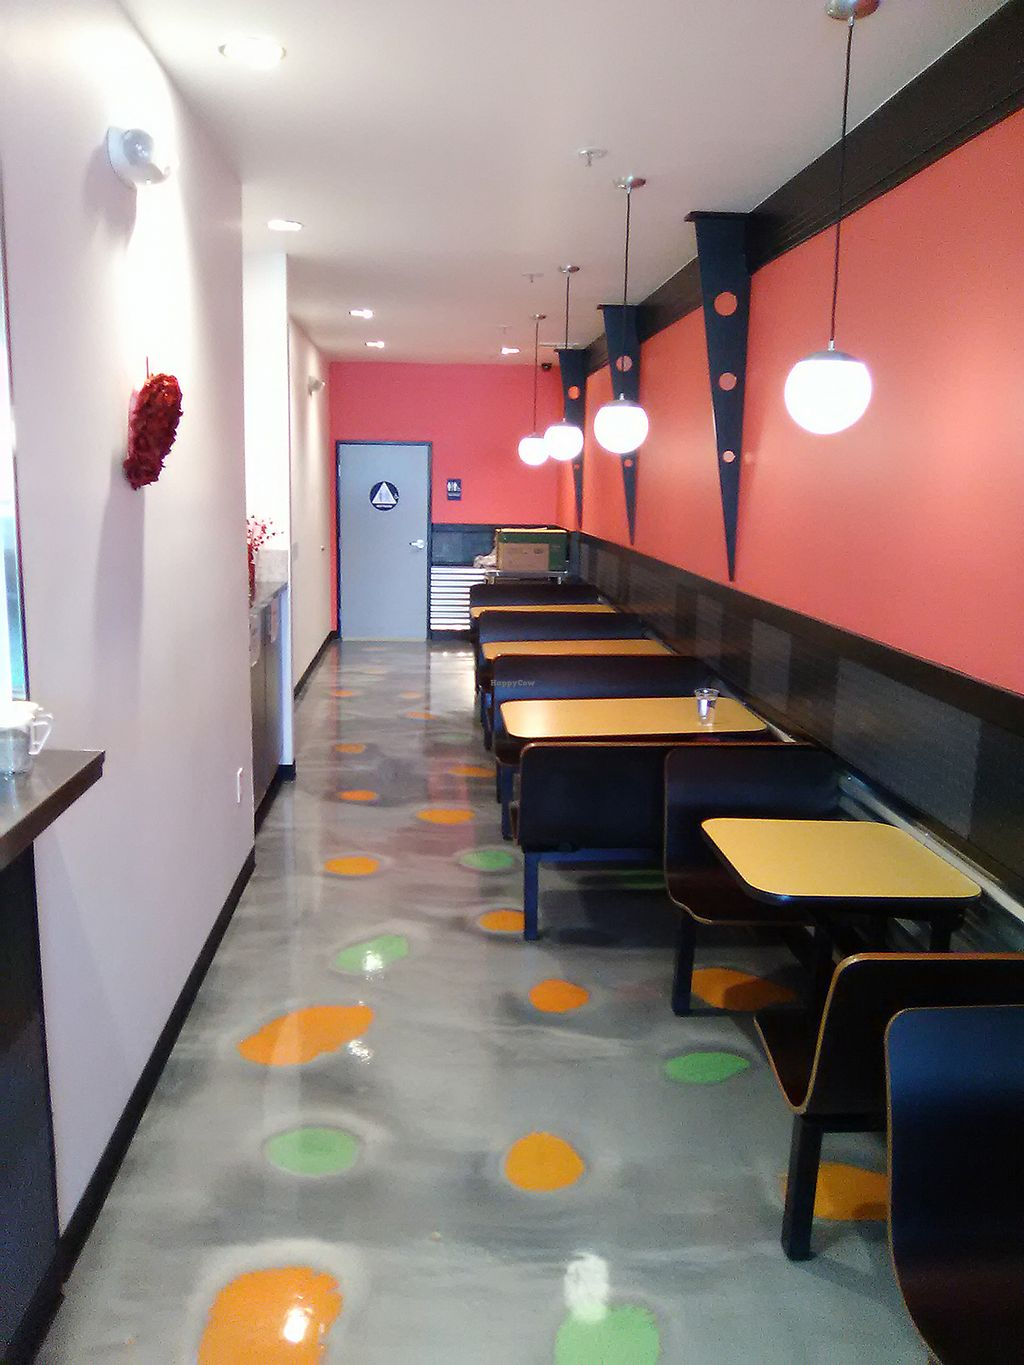 "Photo of Boba Nosh  by <a href=""/members/profile/mexivegan"">mexivegan</a> <br/>Interior seating near view of kitchen <br/> February 14, 2018  - <a href='/contact/abuse/image/101282/359063'>Report</a>"